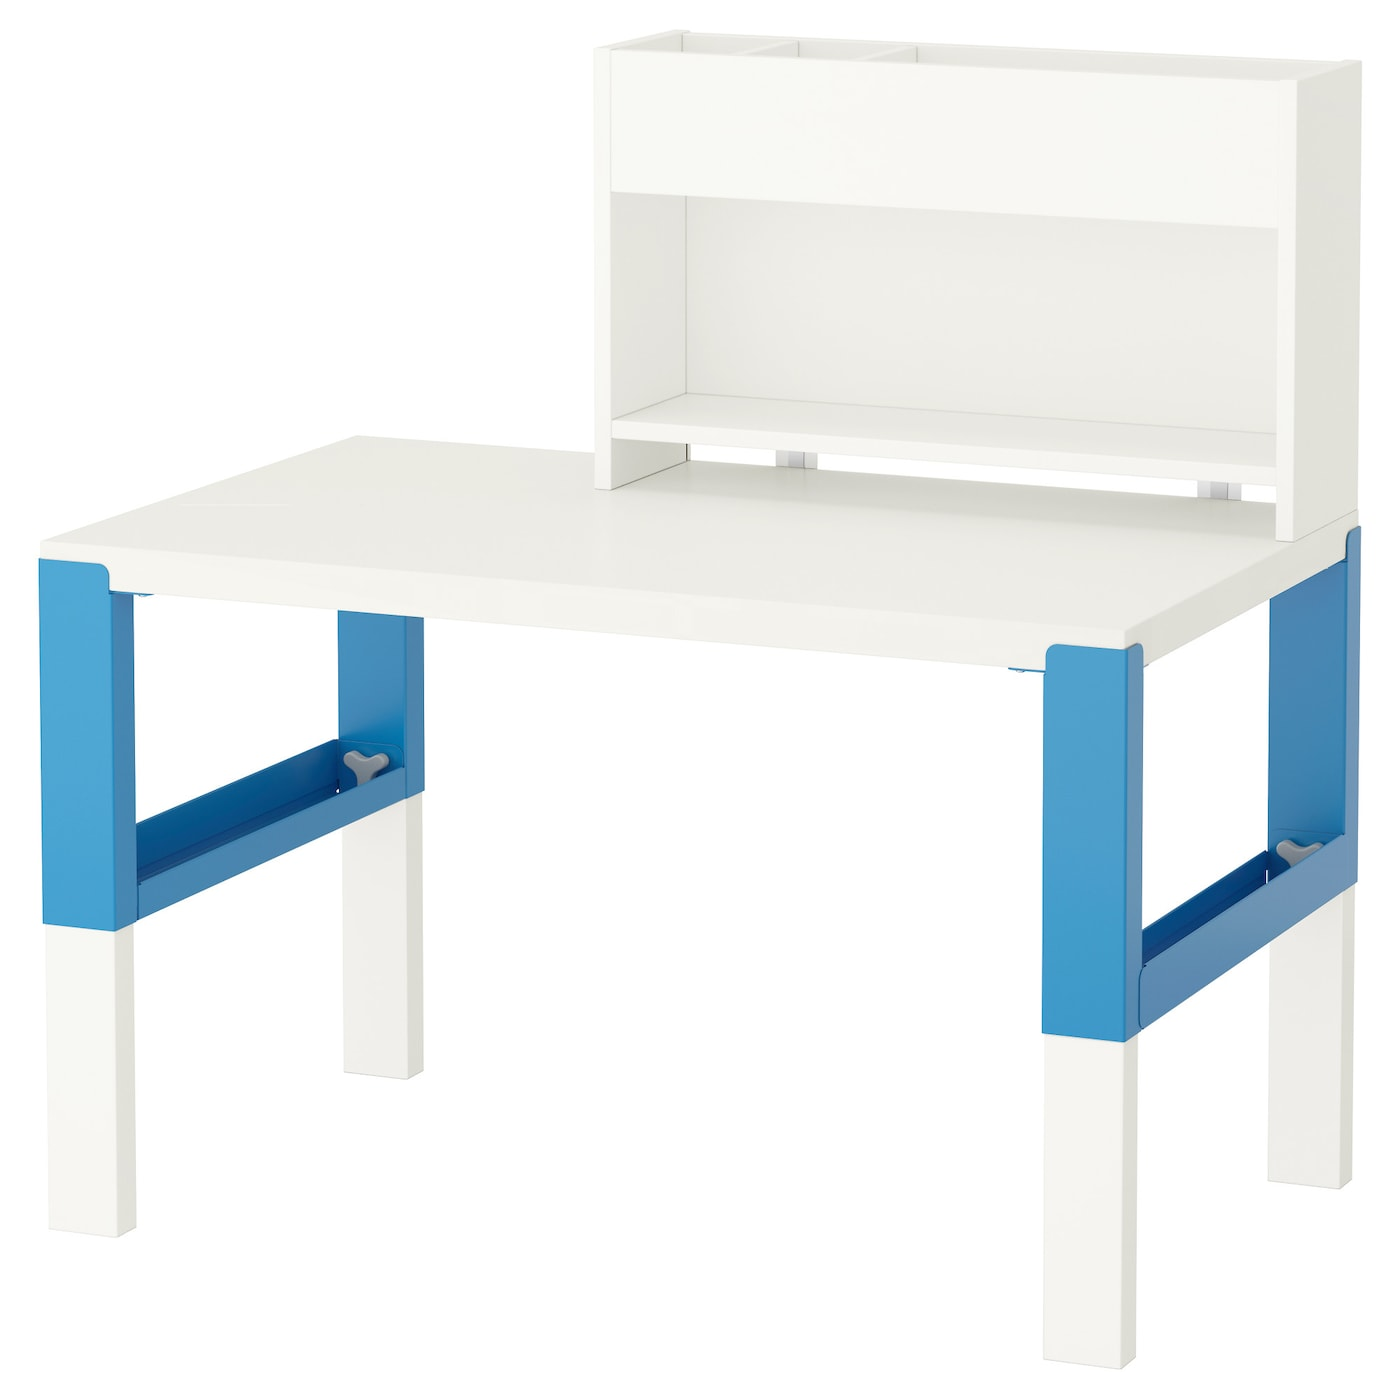 p hl desk with add on unit white blue 96x58 cm ikea